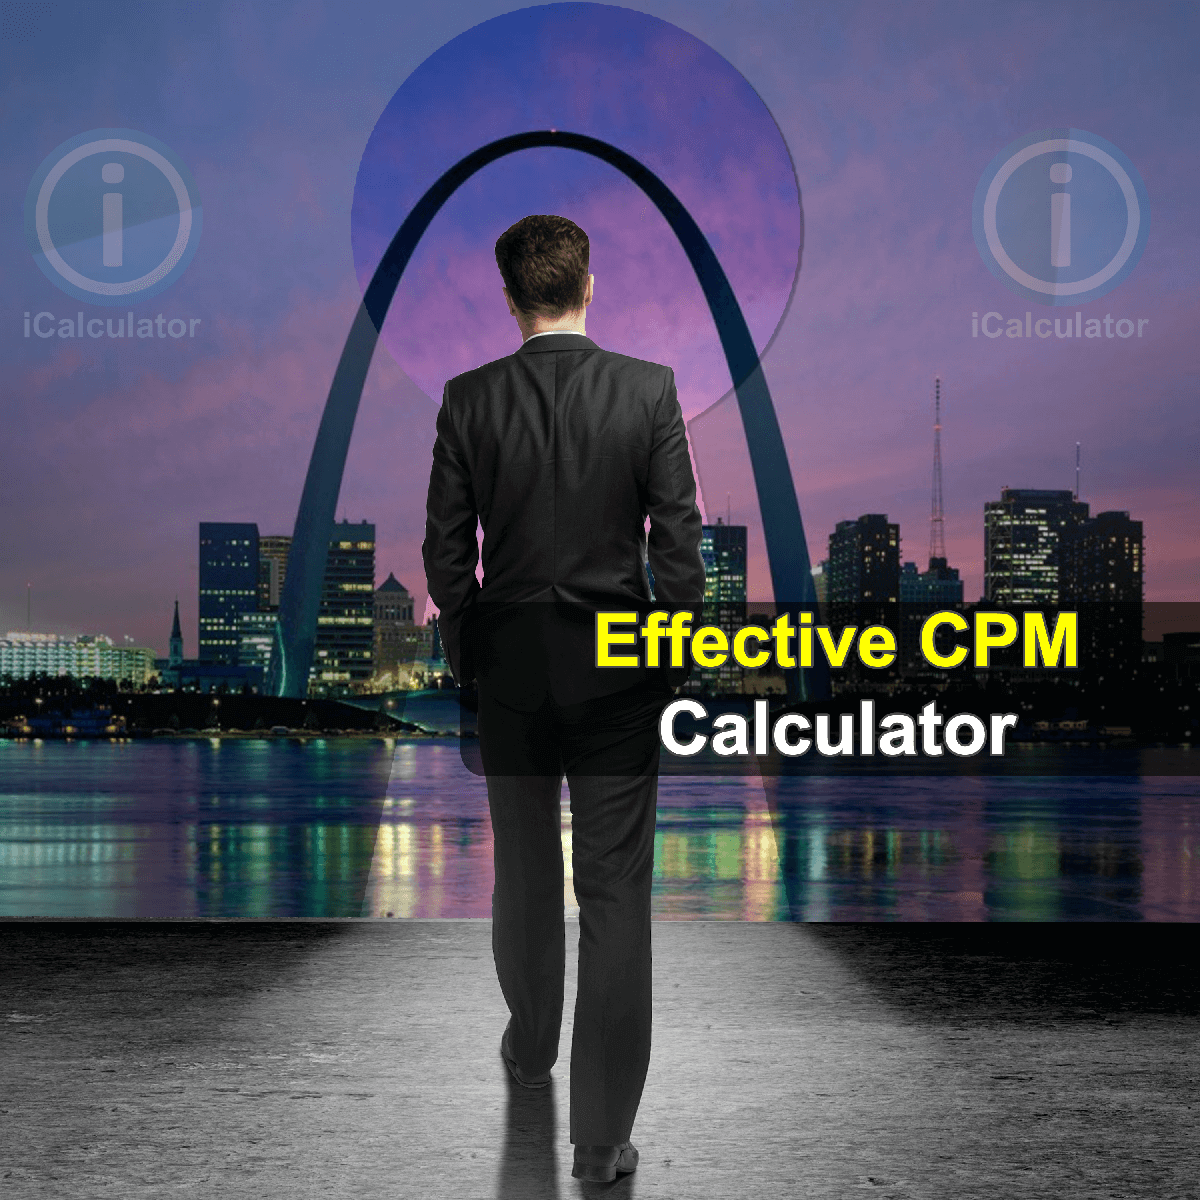 Effective CPM Calculator. This image provides details of how to calculate CPM using a calculator and notepad. By using the Effective CPM formula, the Effective CPM Calculator provides a true calculation of the performance of ad campaigns on the basis of revenue generated by them per thousand views